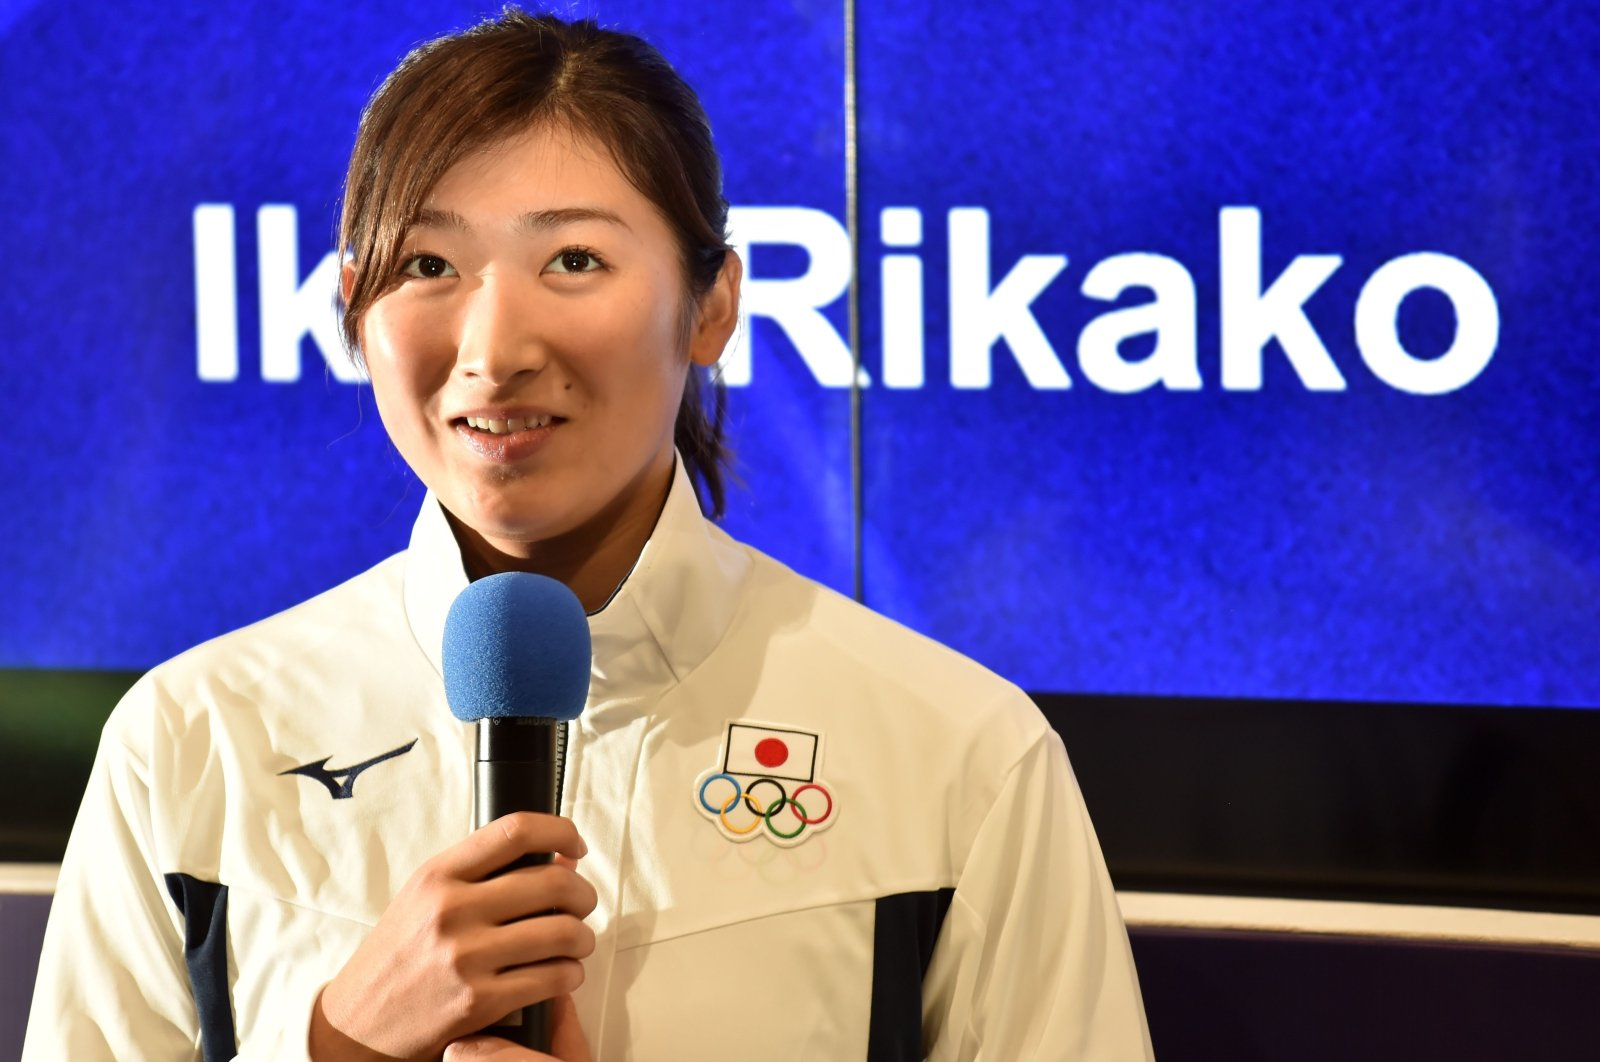 Ikee Rikako speaks at an awards ceremony in Jakarta, Indonesia, Sept. 2, 2018. (AFP Photo)